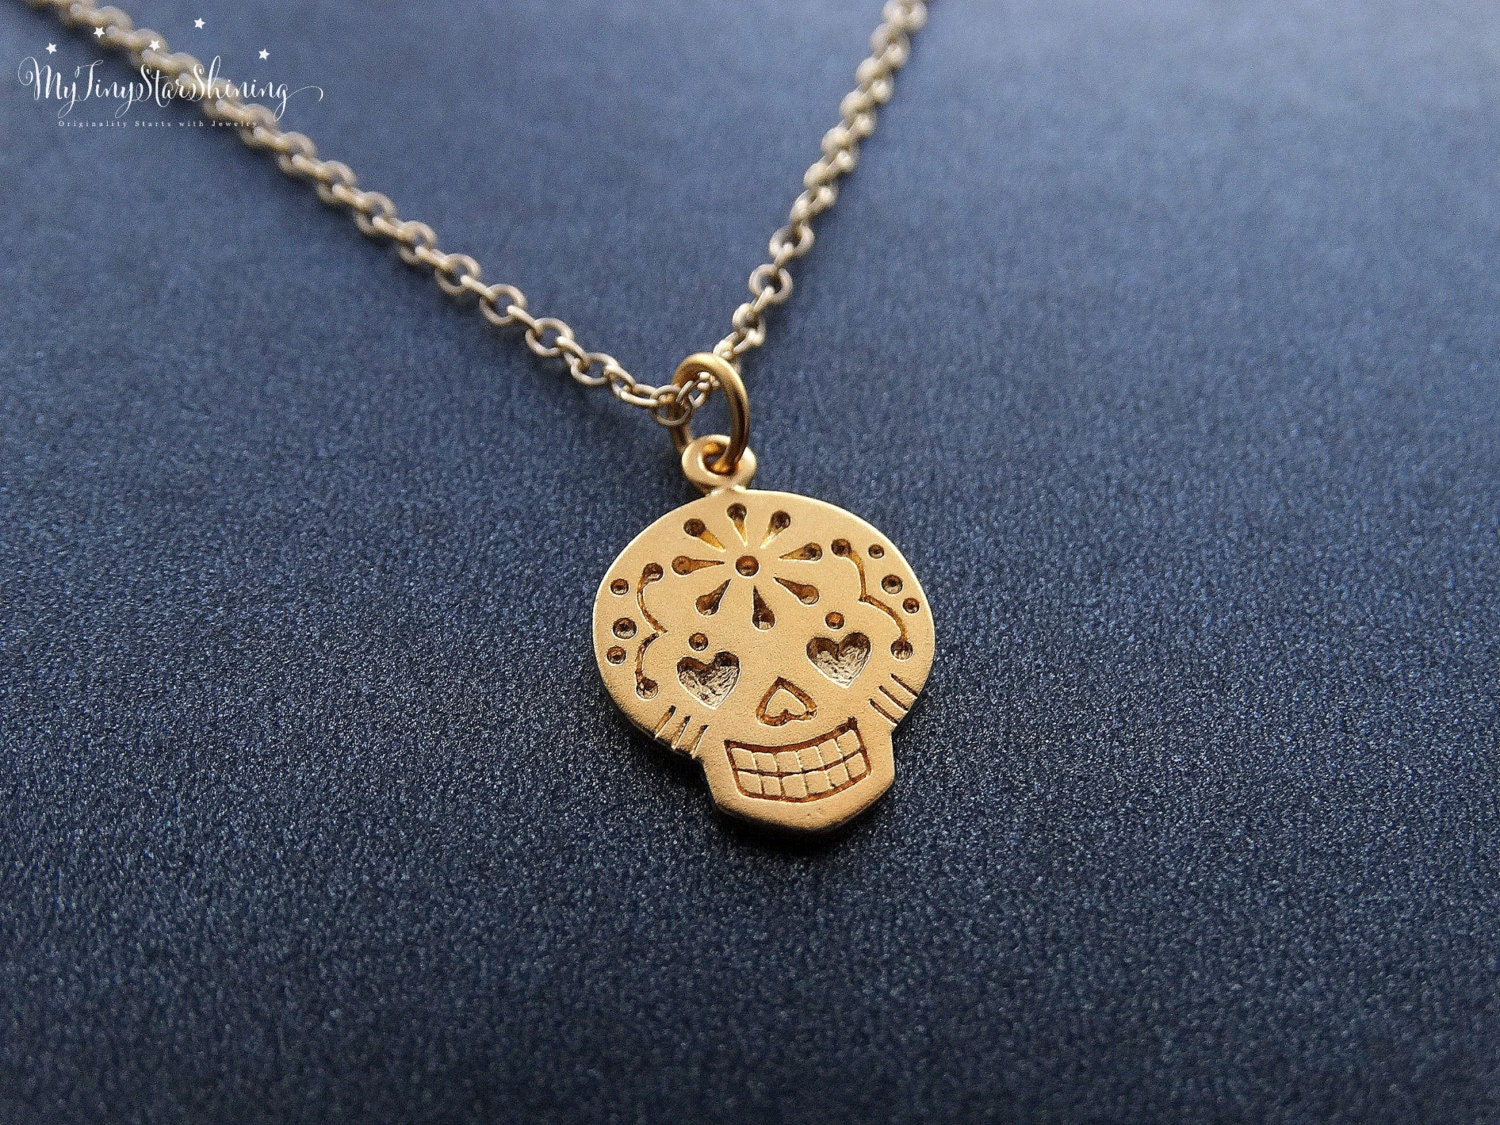 jewellery necklace pendant tatty uk skull necklaces from bijouled devine sugar